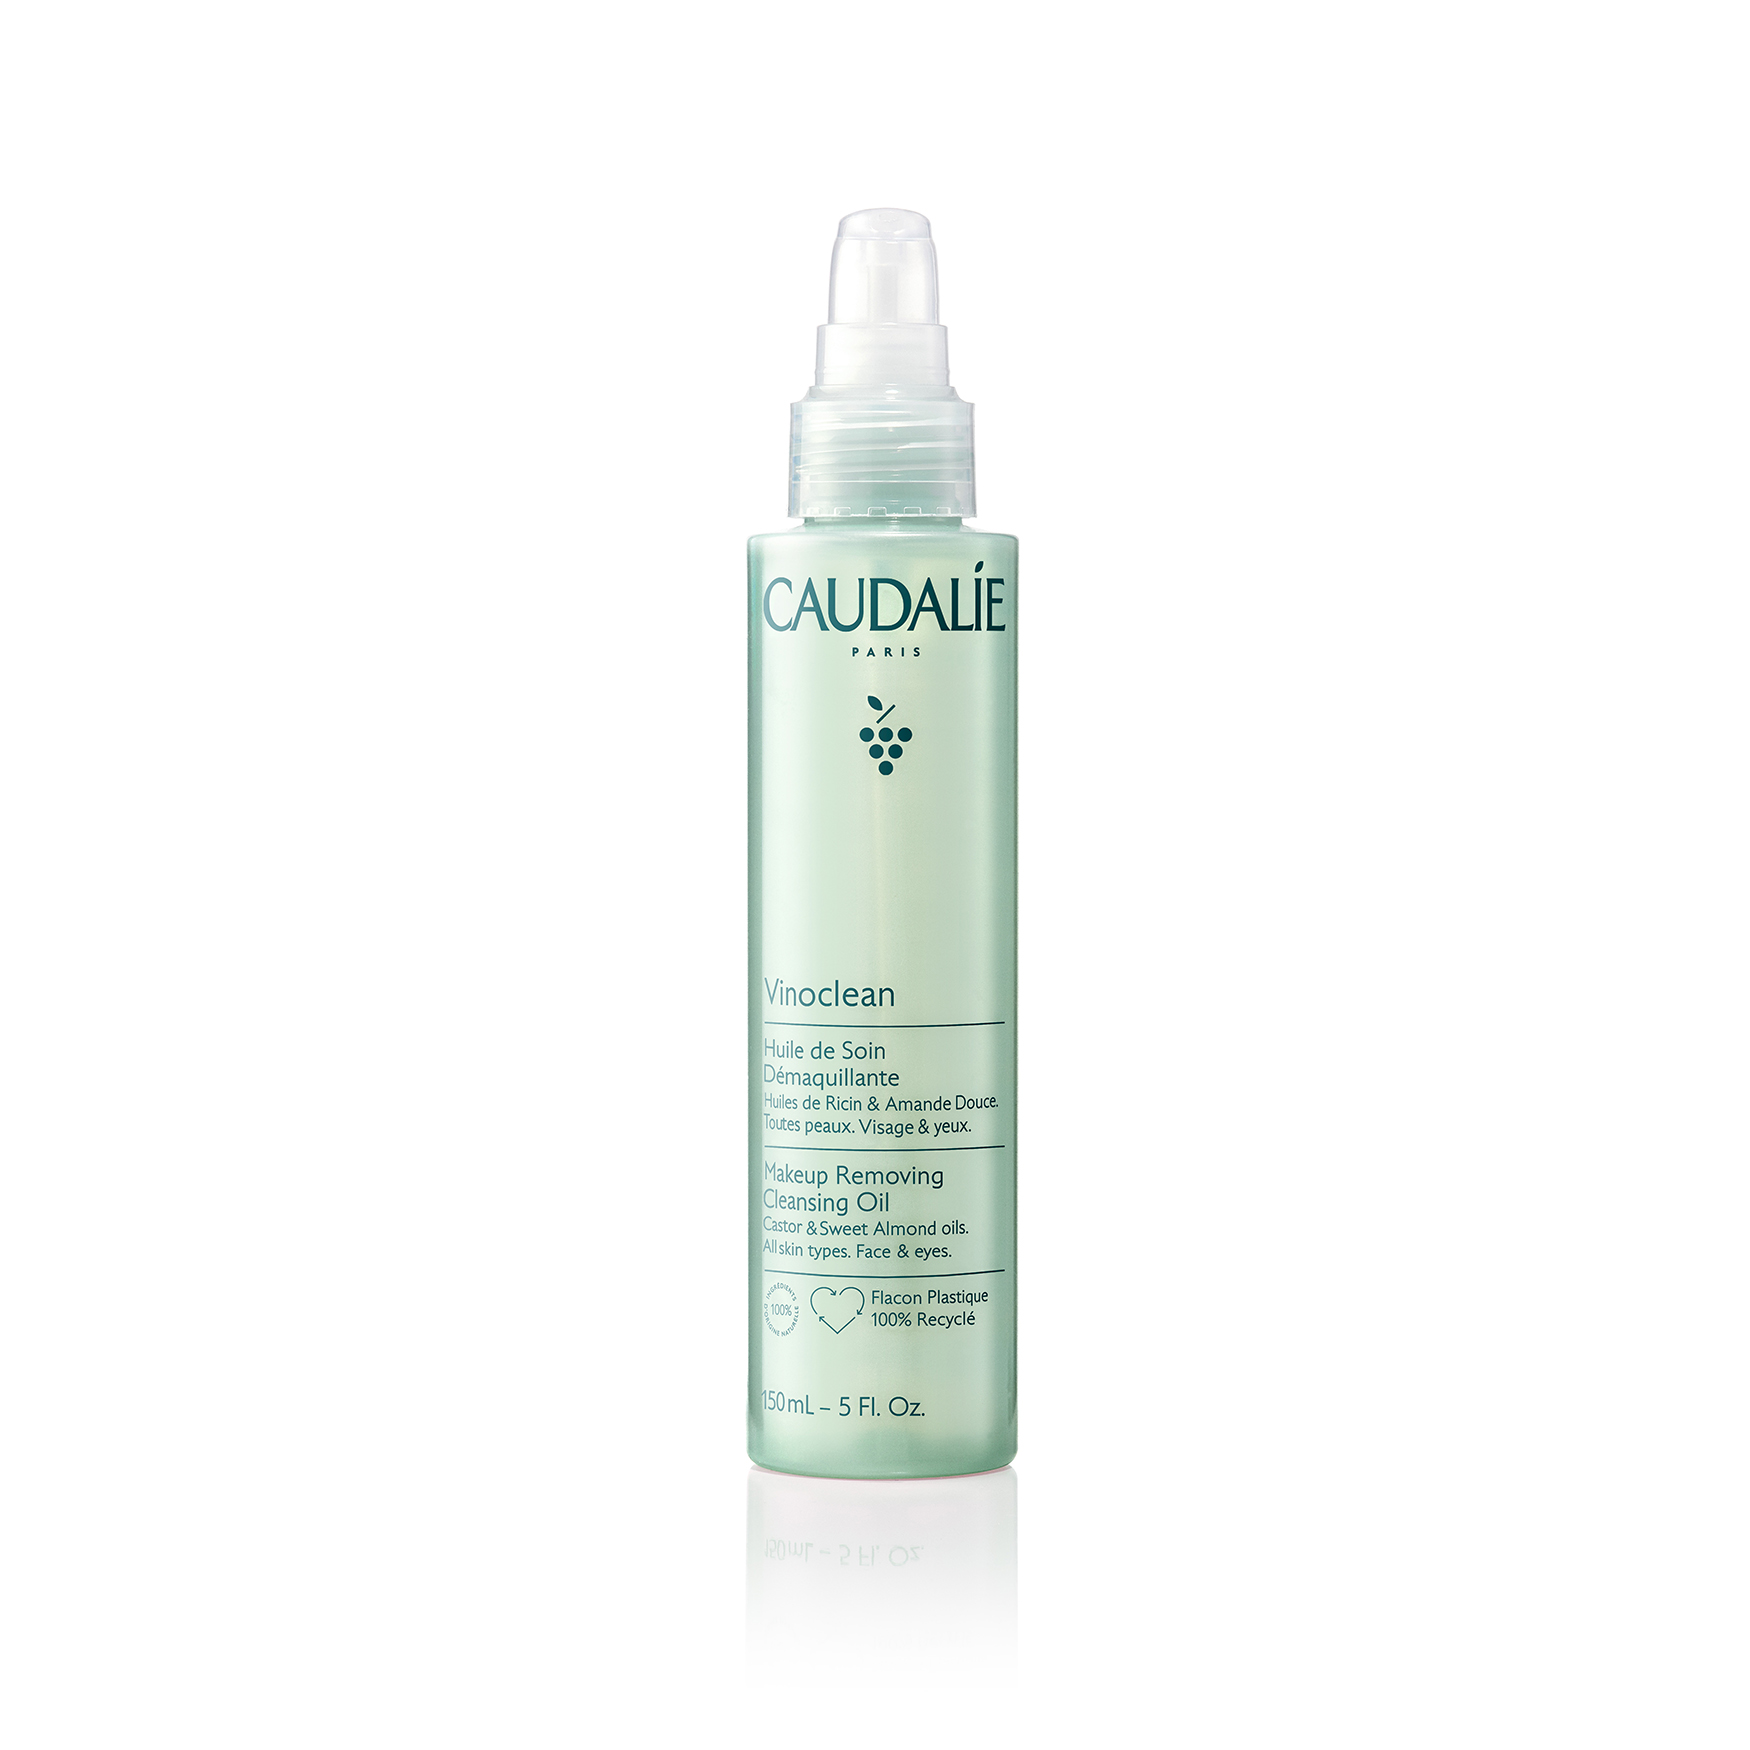 Makeup Removing Cleansing Oil, , large